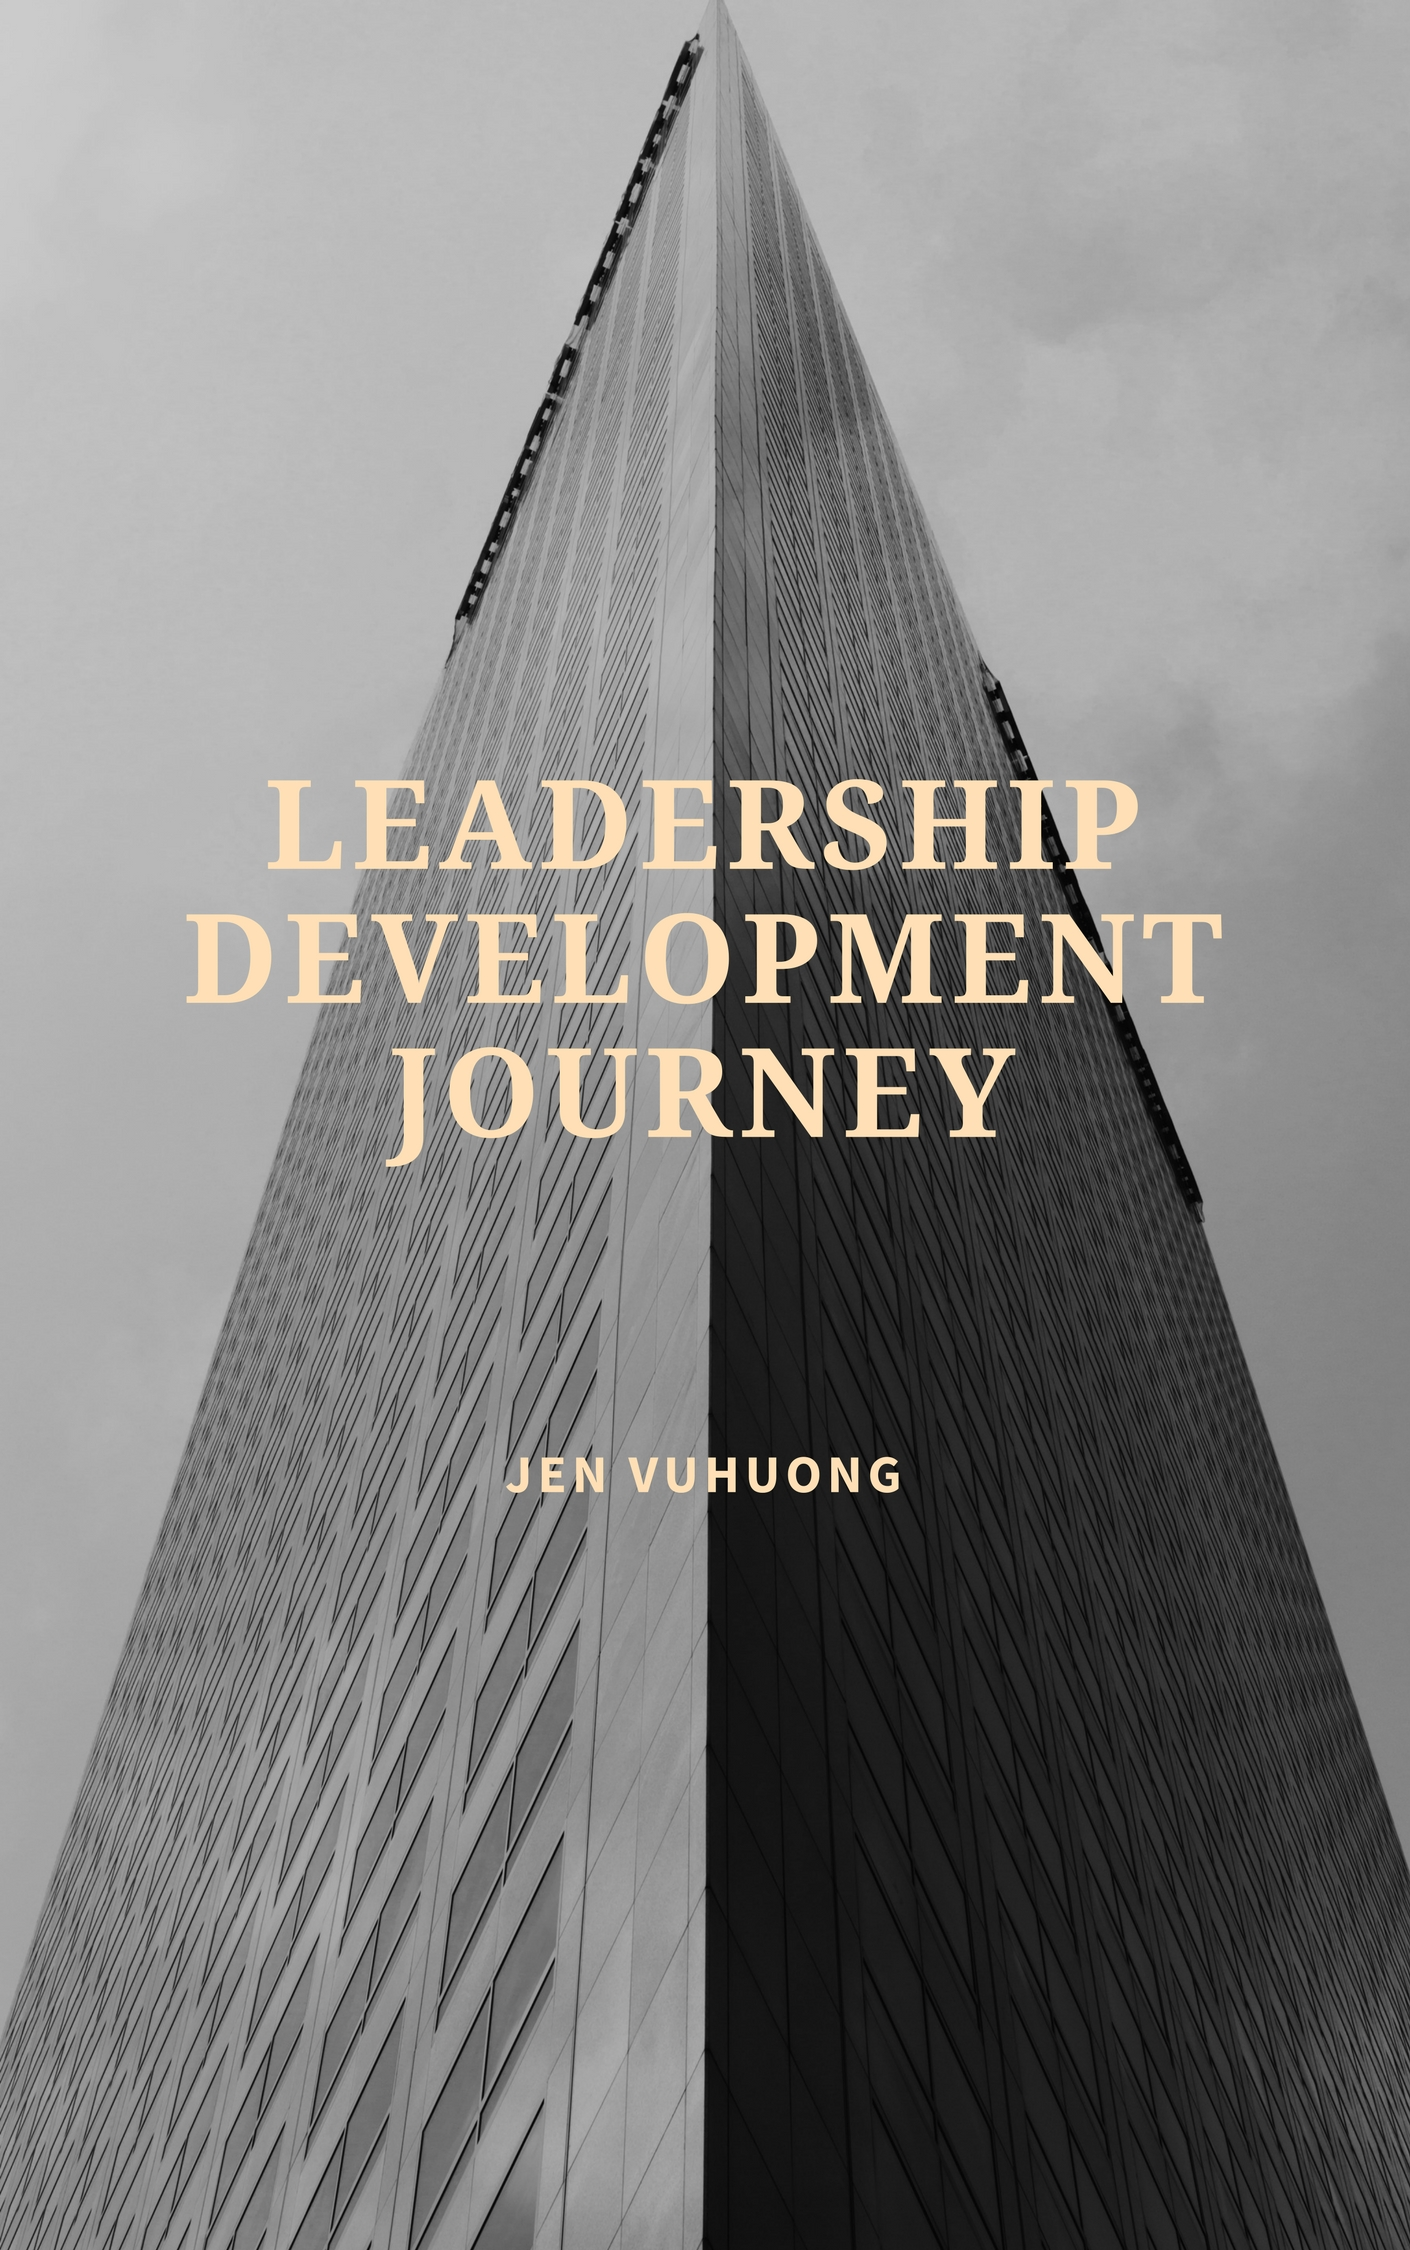 Upcoming book on leadership development...